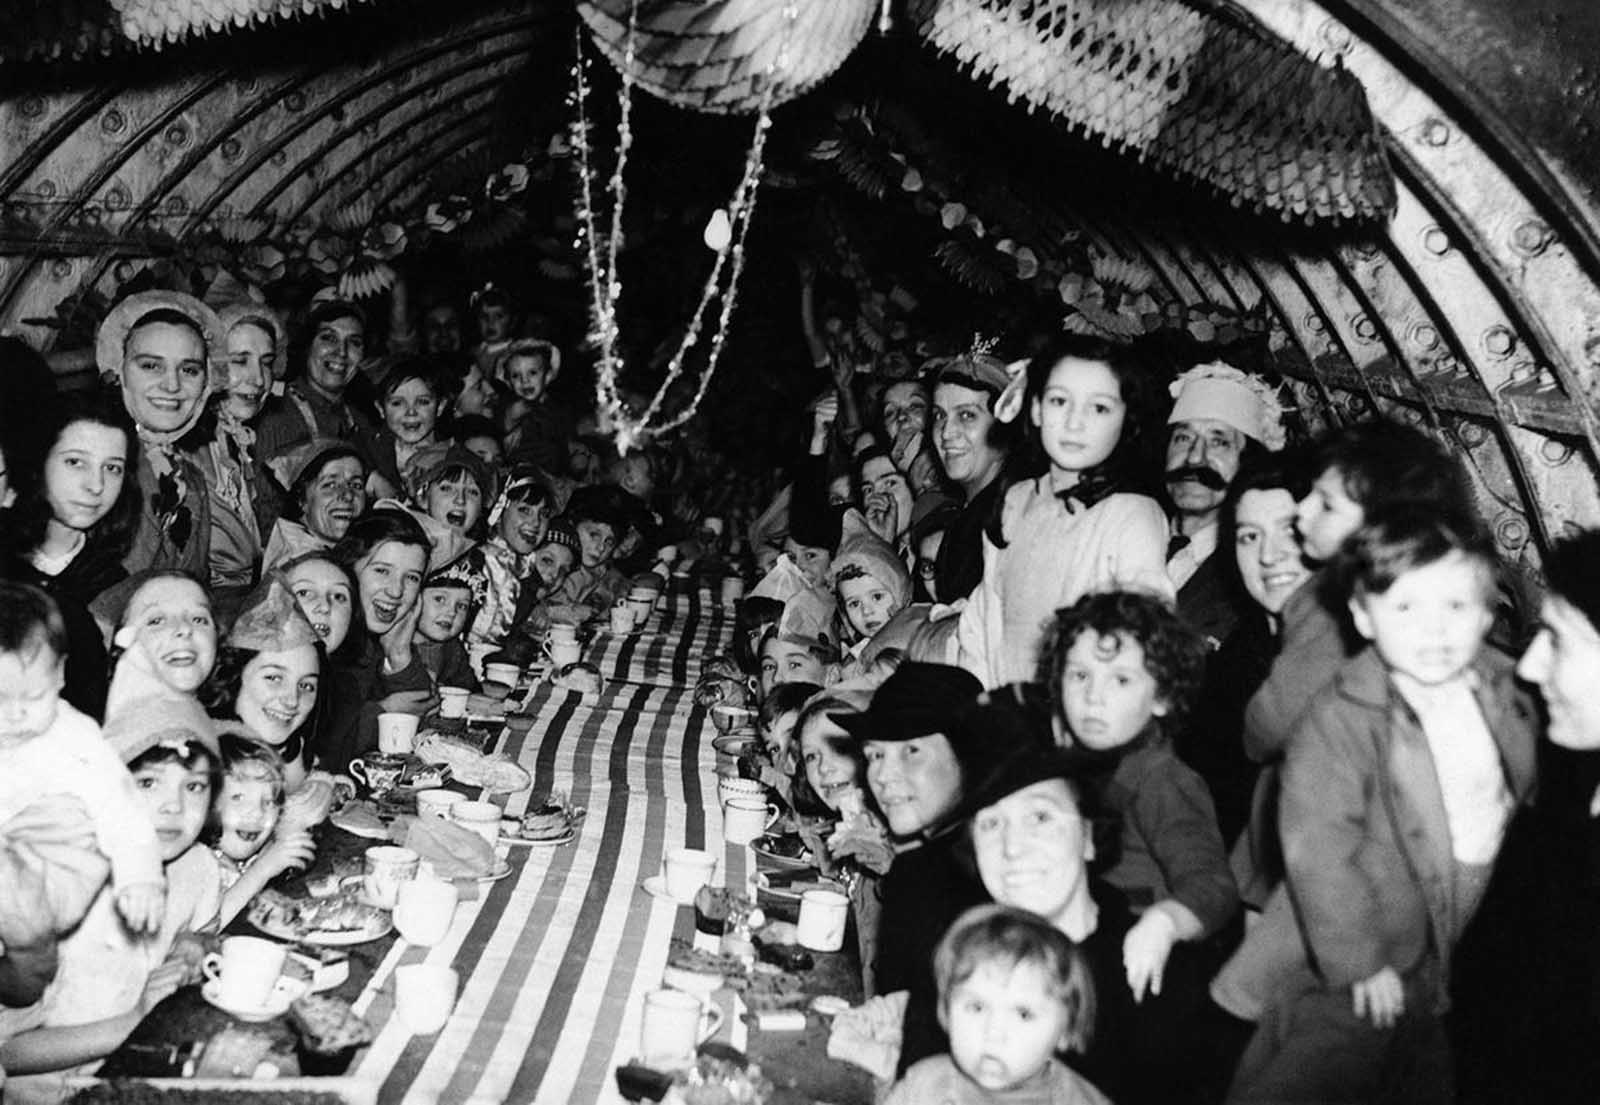 London children enjoy themselves at a Christmas Party, on December 25, 1940, in an underground shelter.